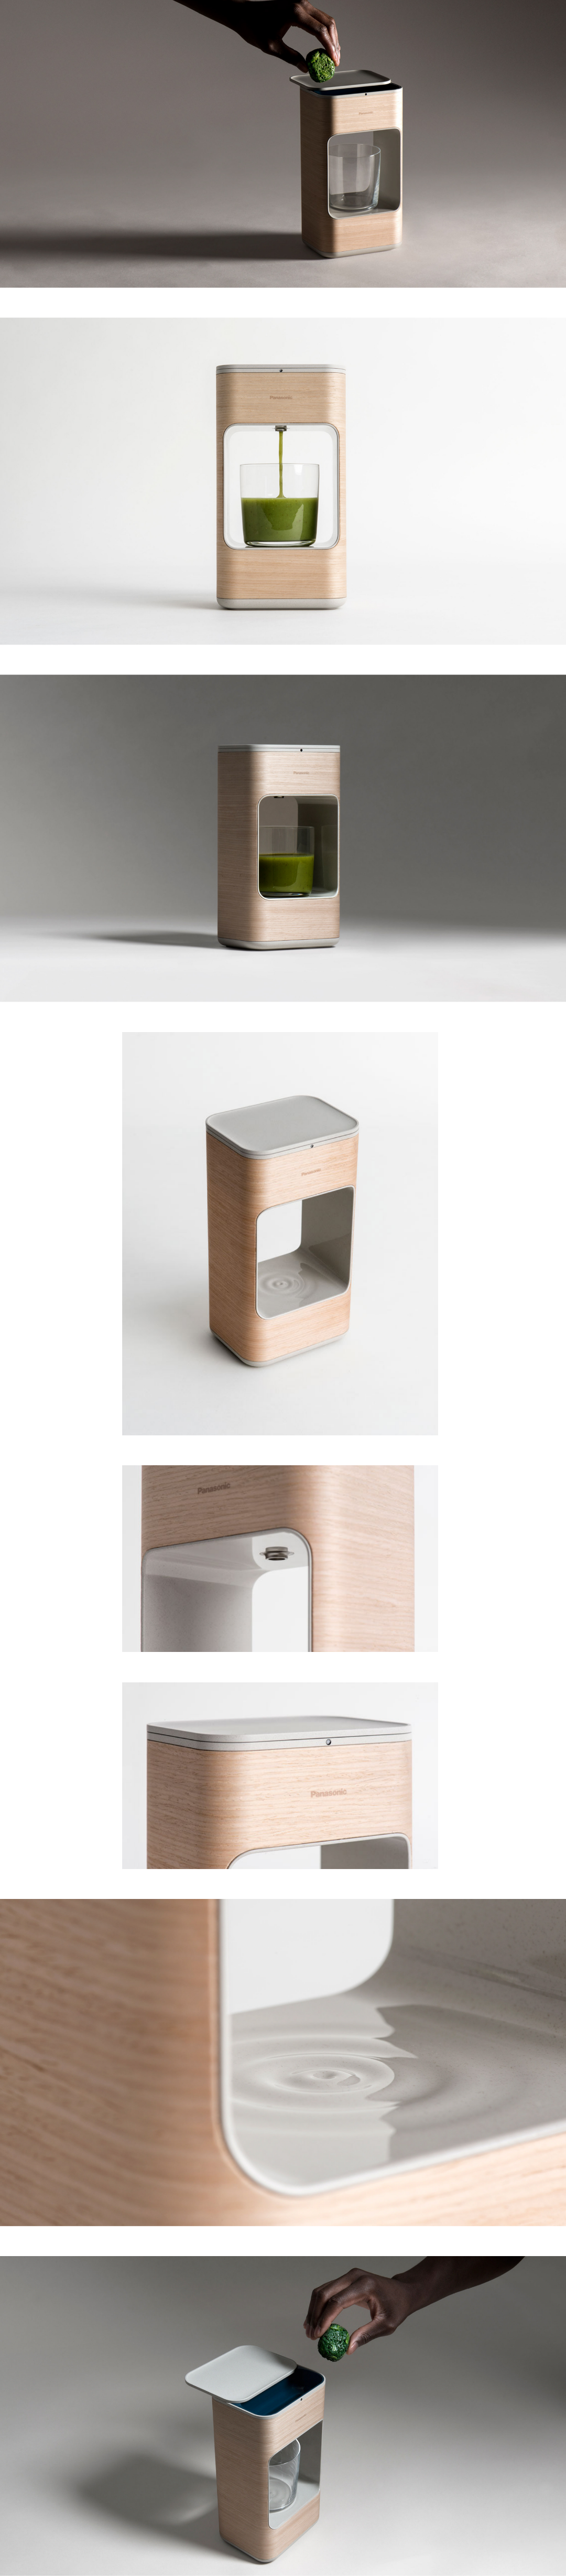 Industrial Design,Product Design,Photography